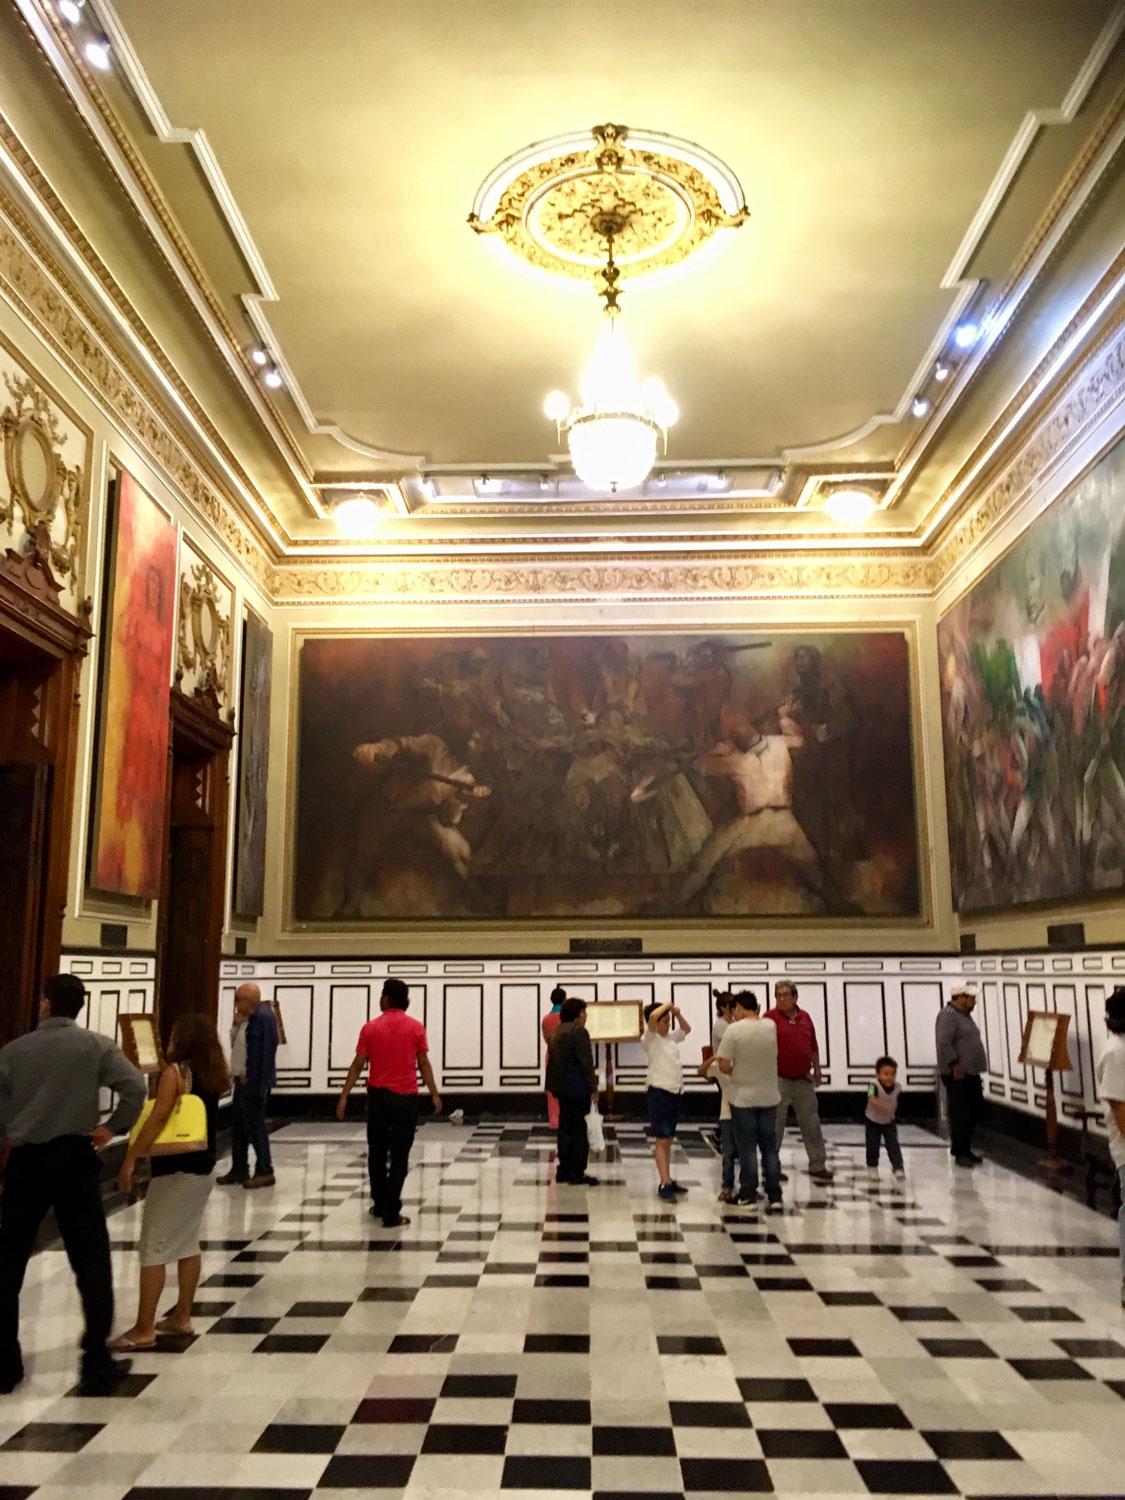 The murals in the Town Hall.